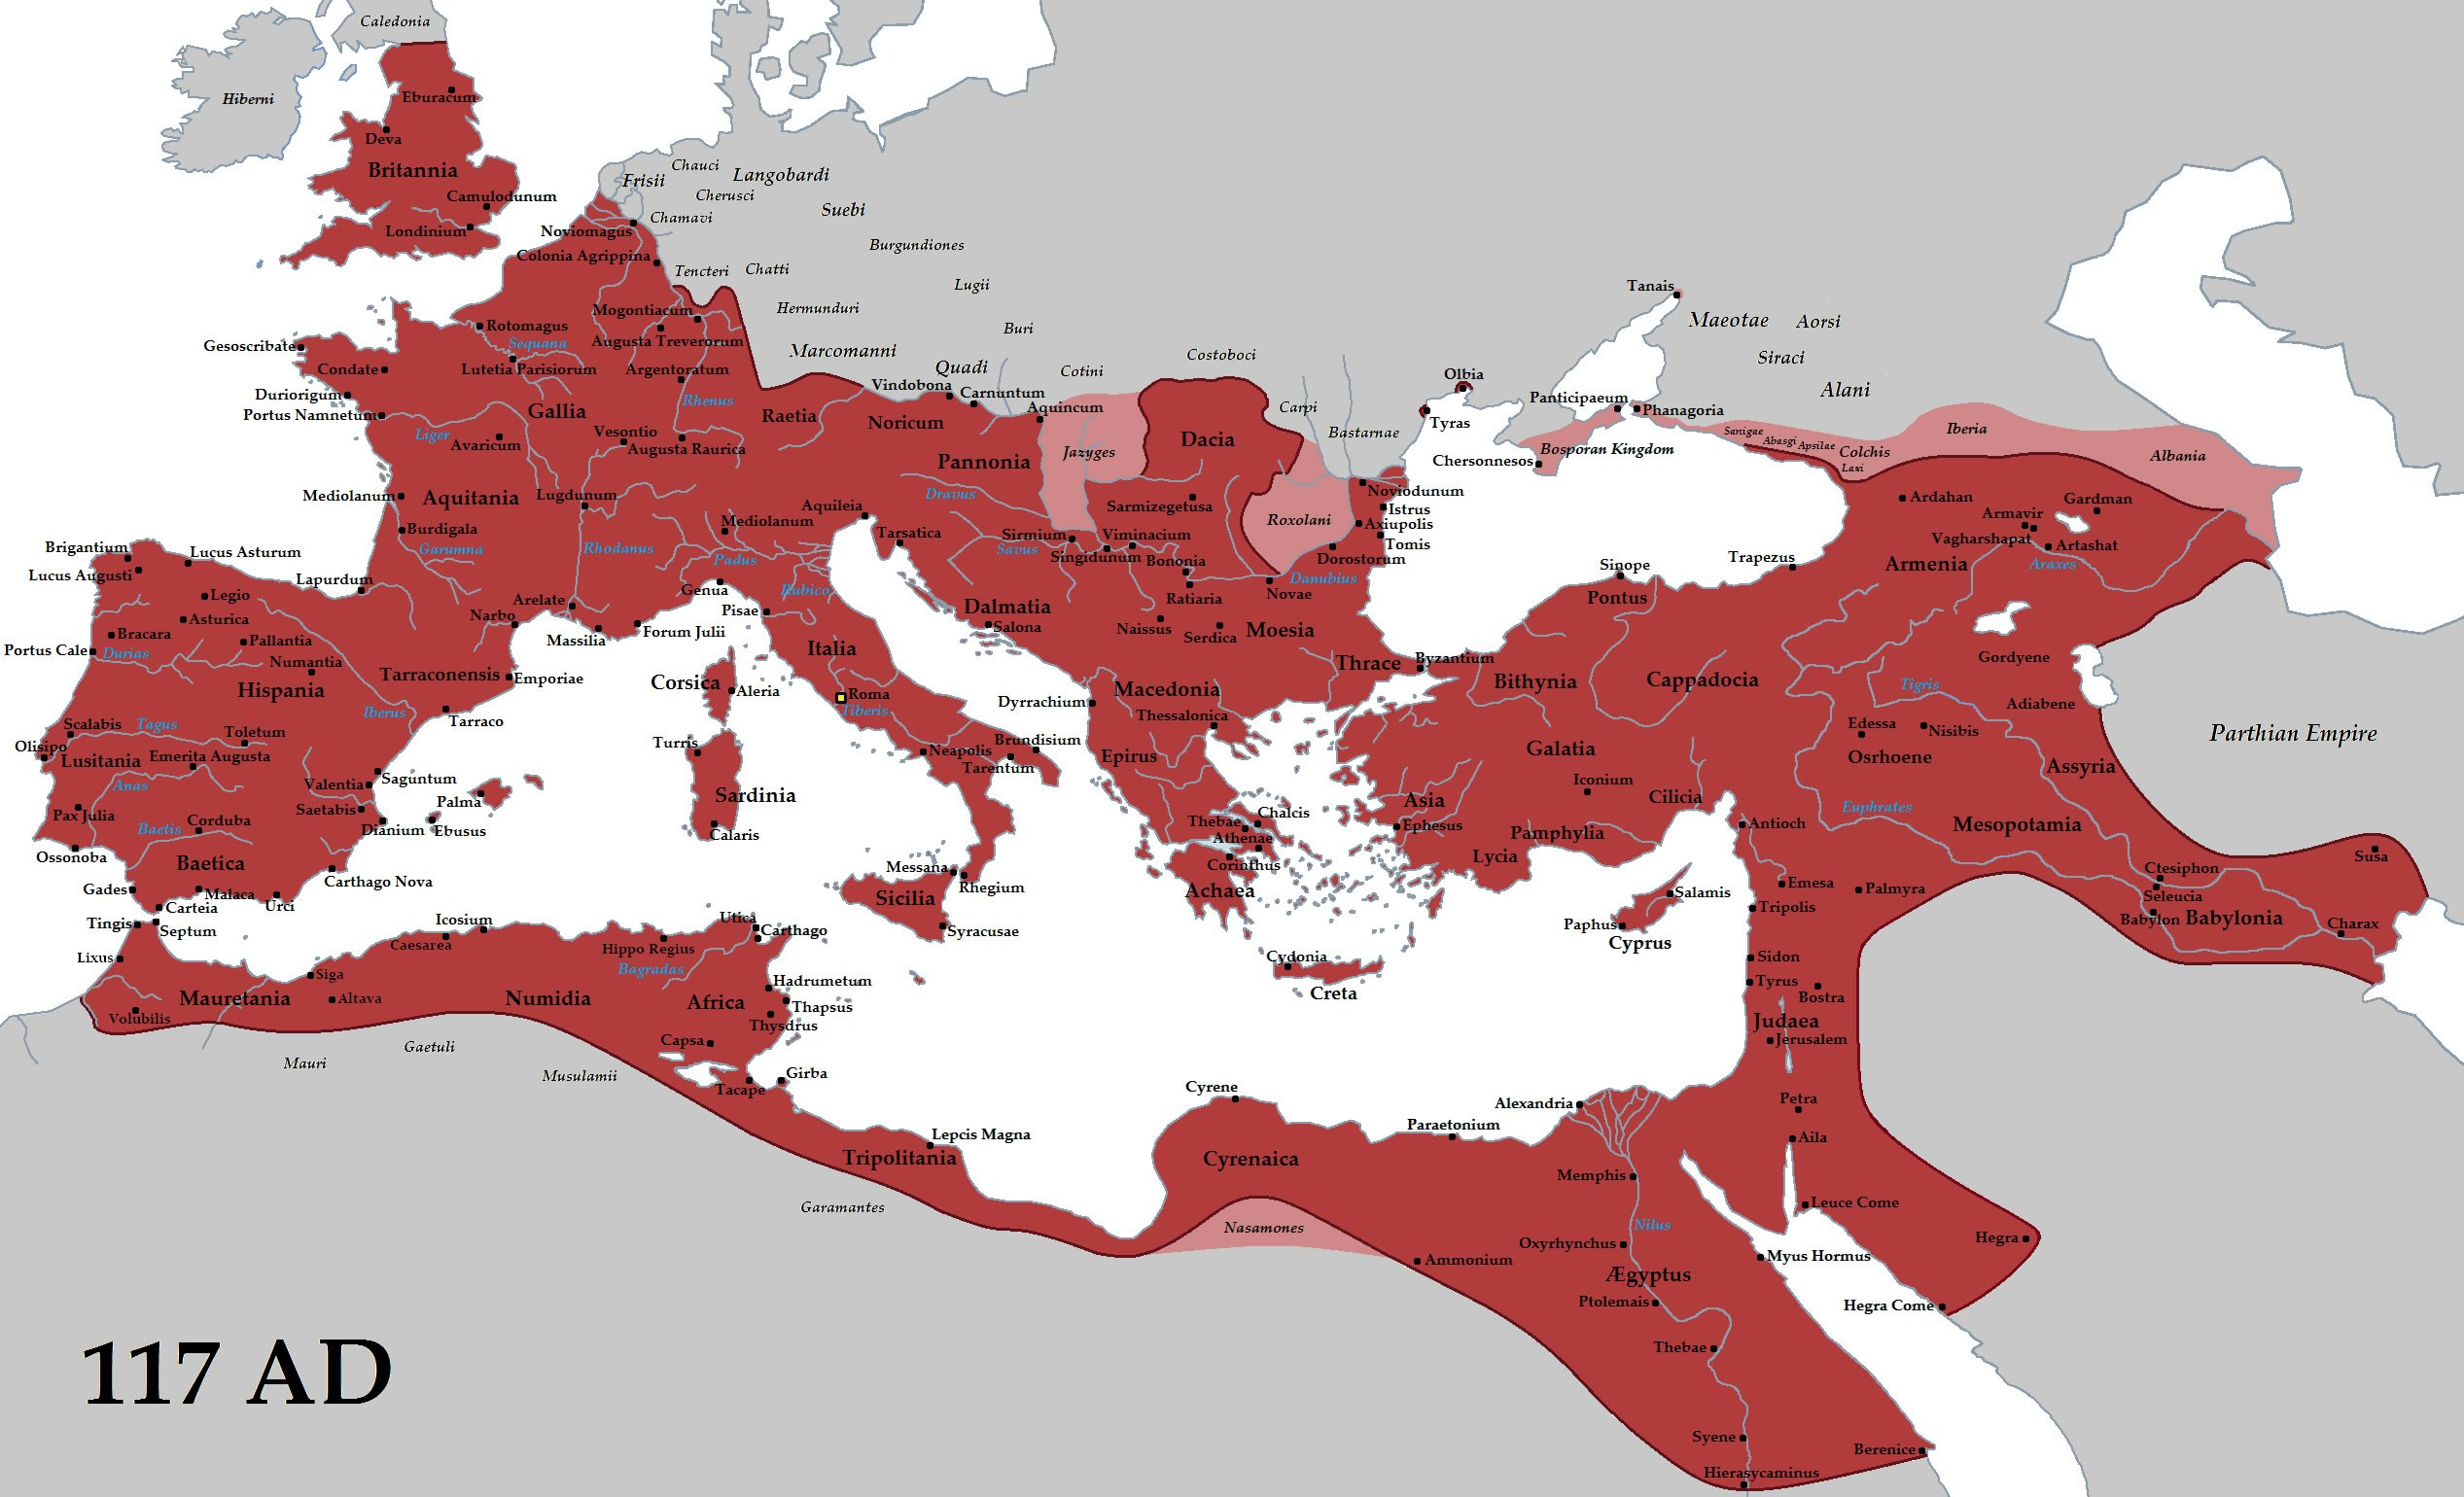 Creative Commons Attribution-Share Alike 3.0 Unported license https://commons.wikimedia.org/wiki/File:Roman_Empire_Trajan_117AD.png